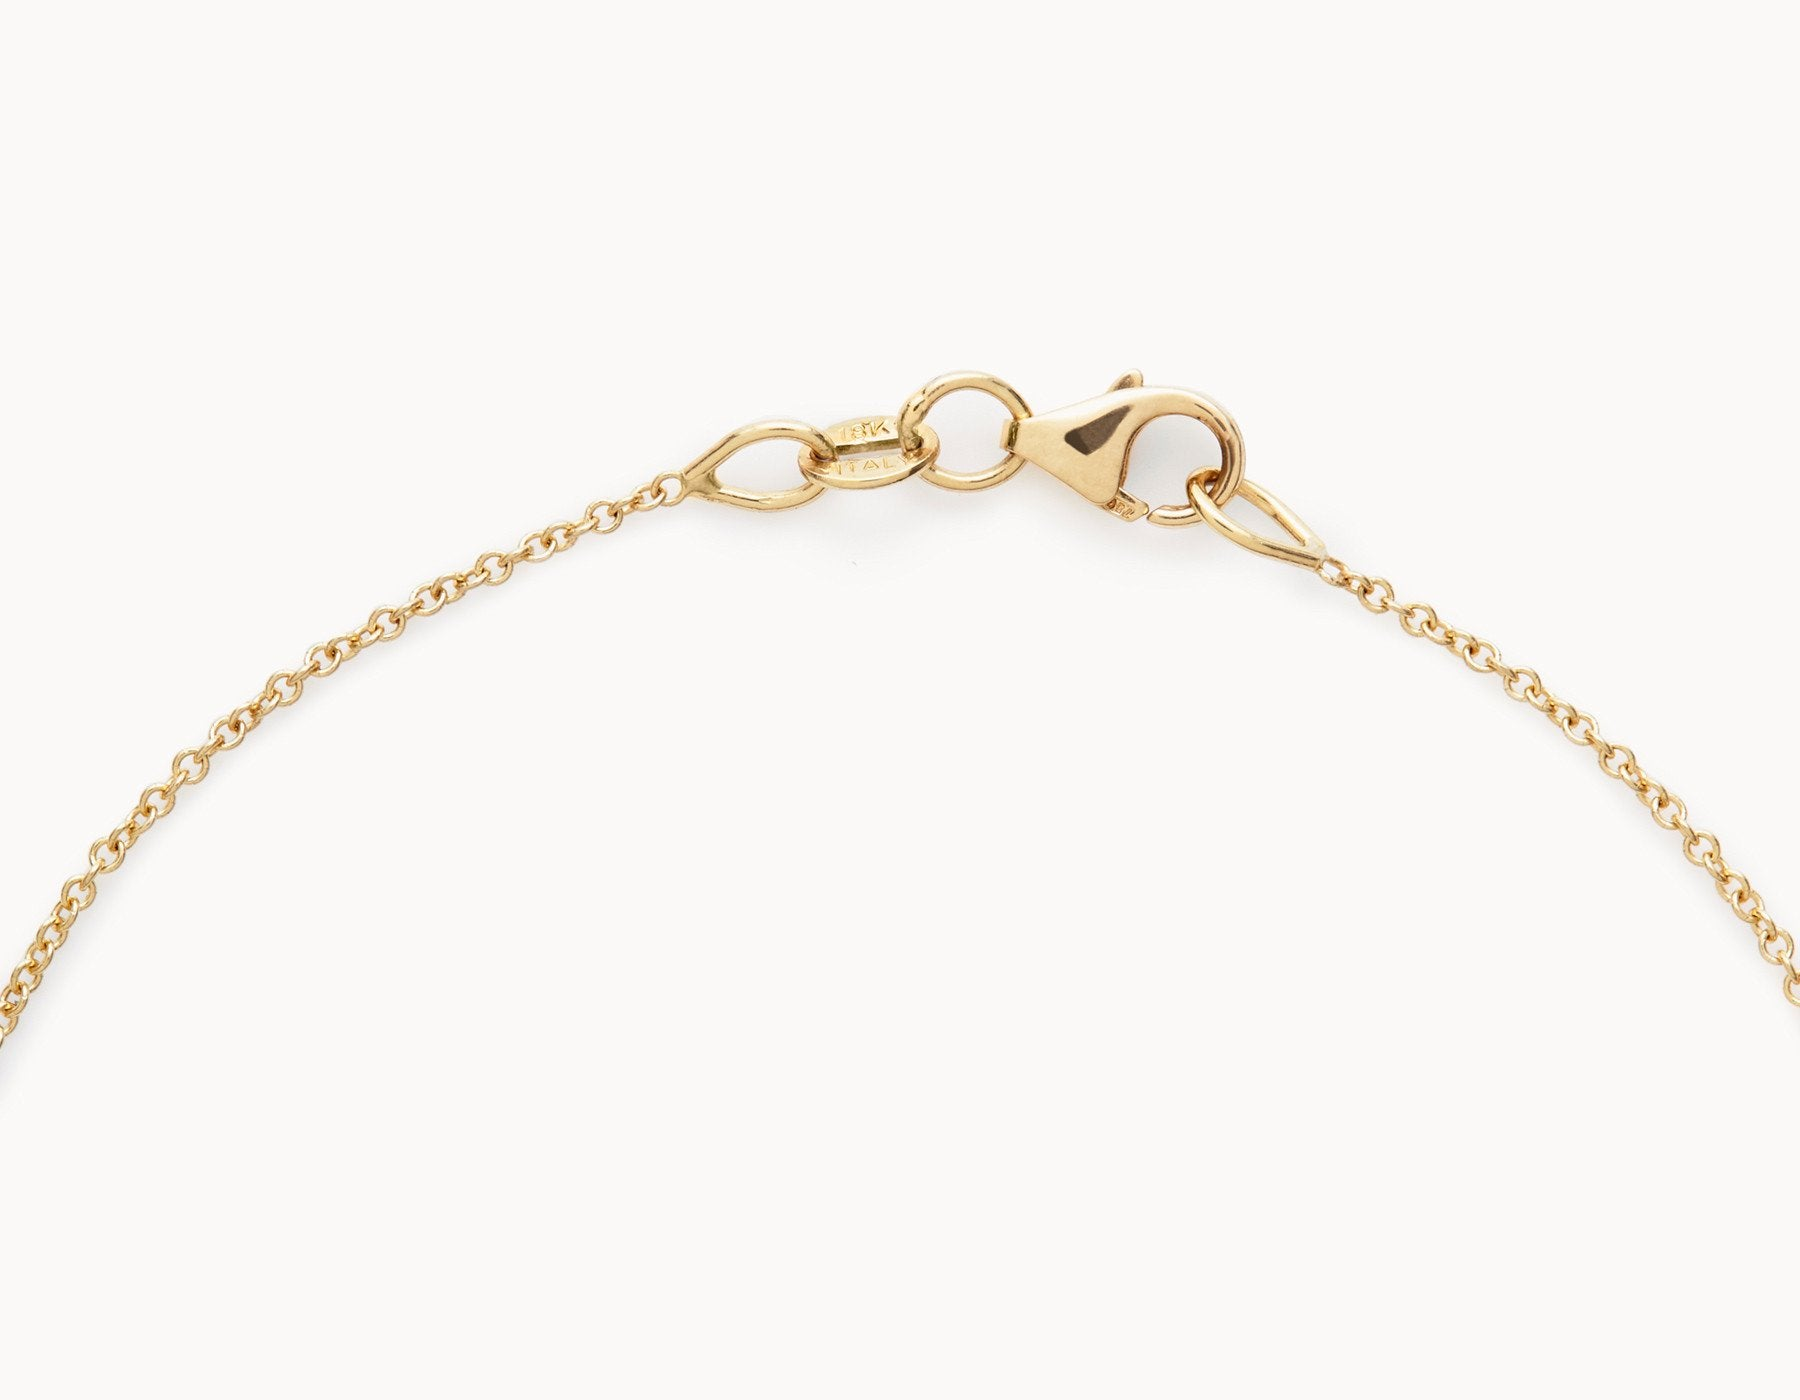 18k Yellow Gold Necklace Chain with Lobster Clasp